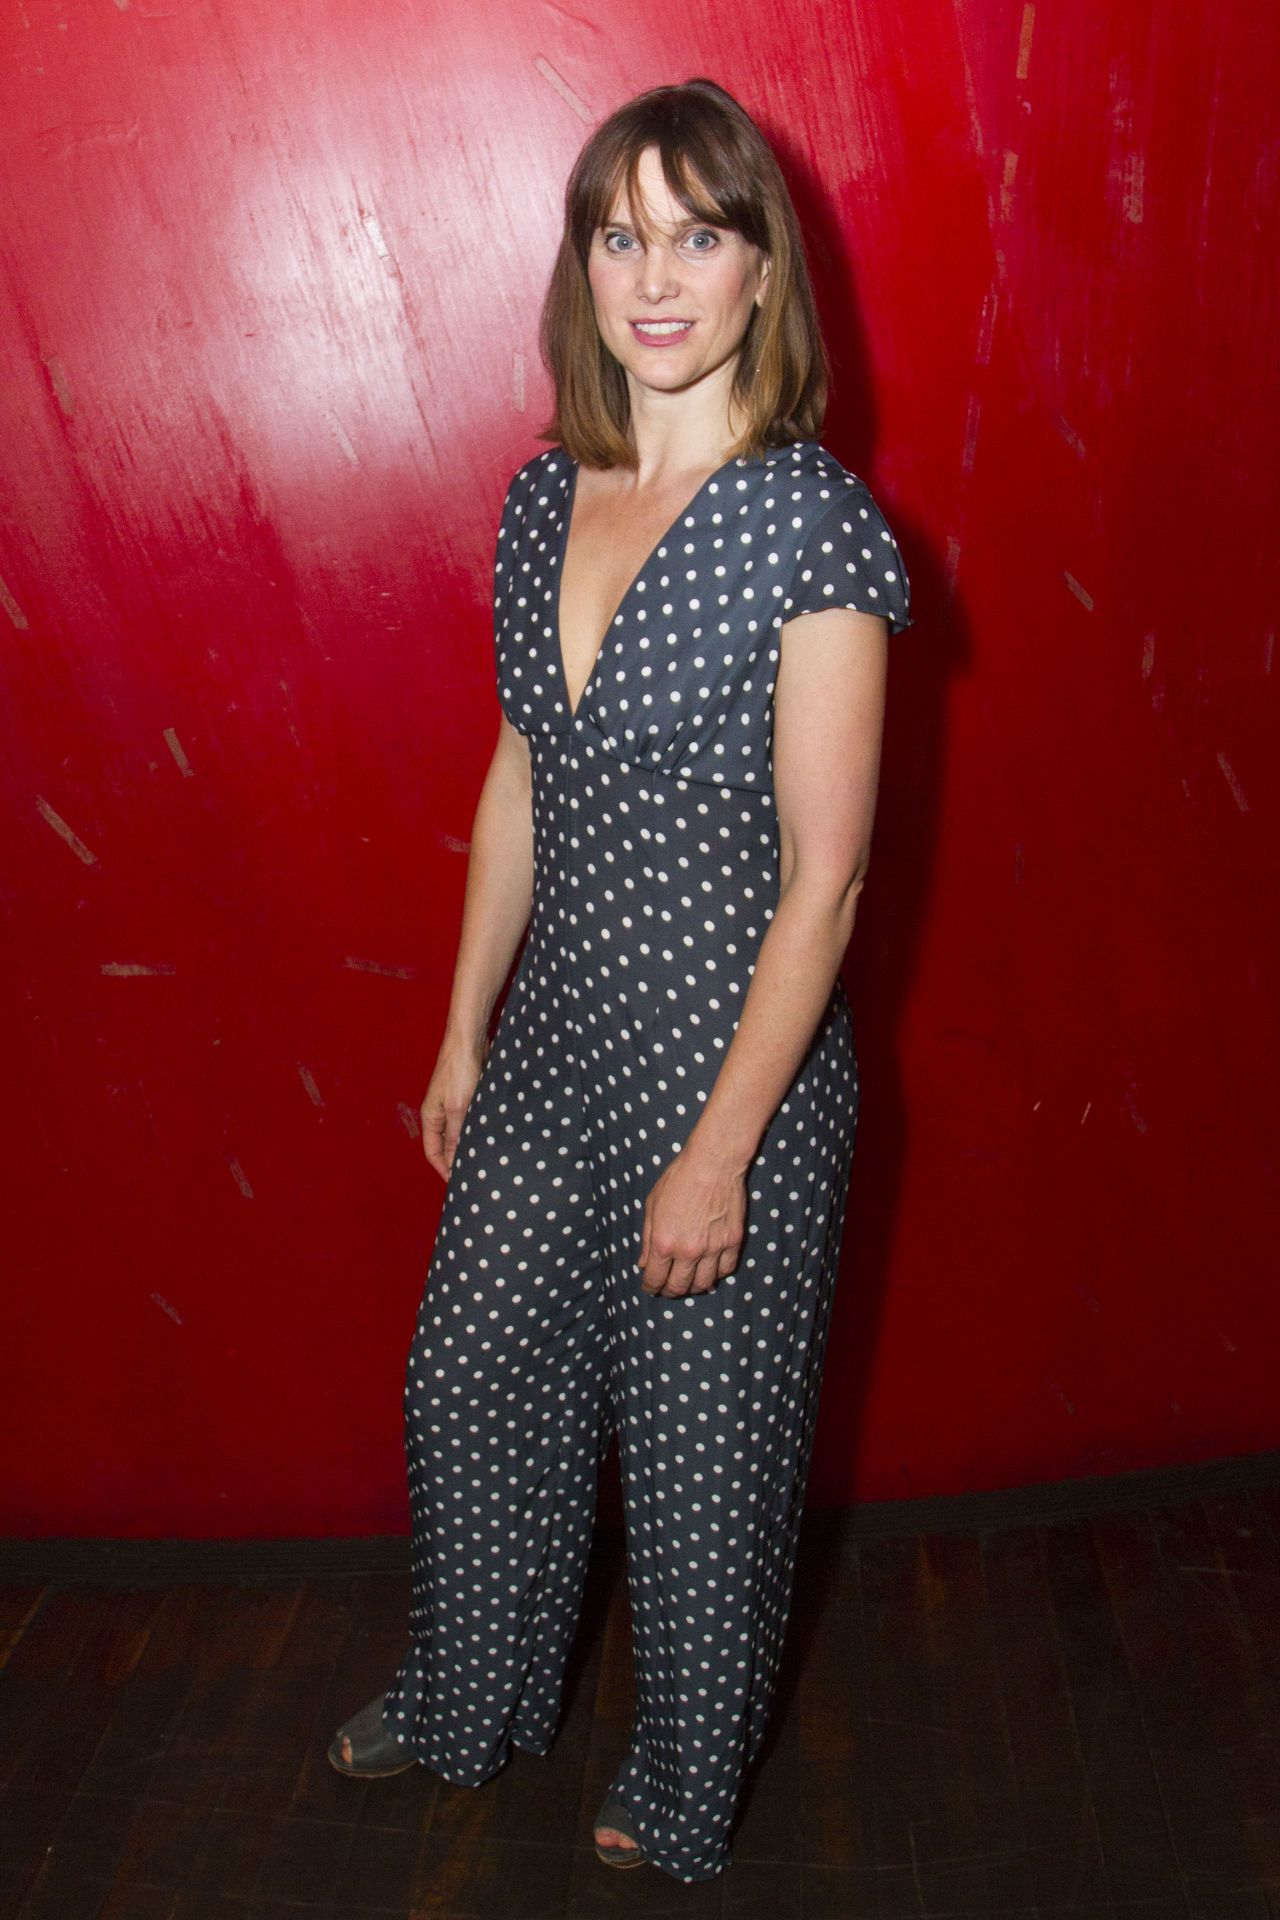 Liz White Quot Road Quot Play After Party In London Uk 07 28 2017